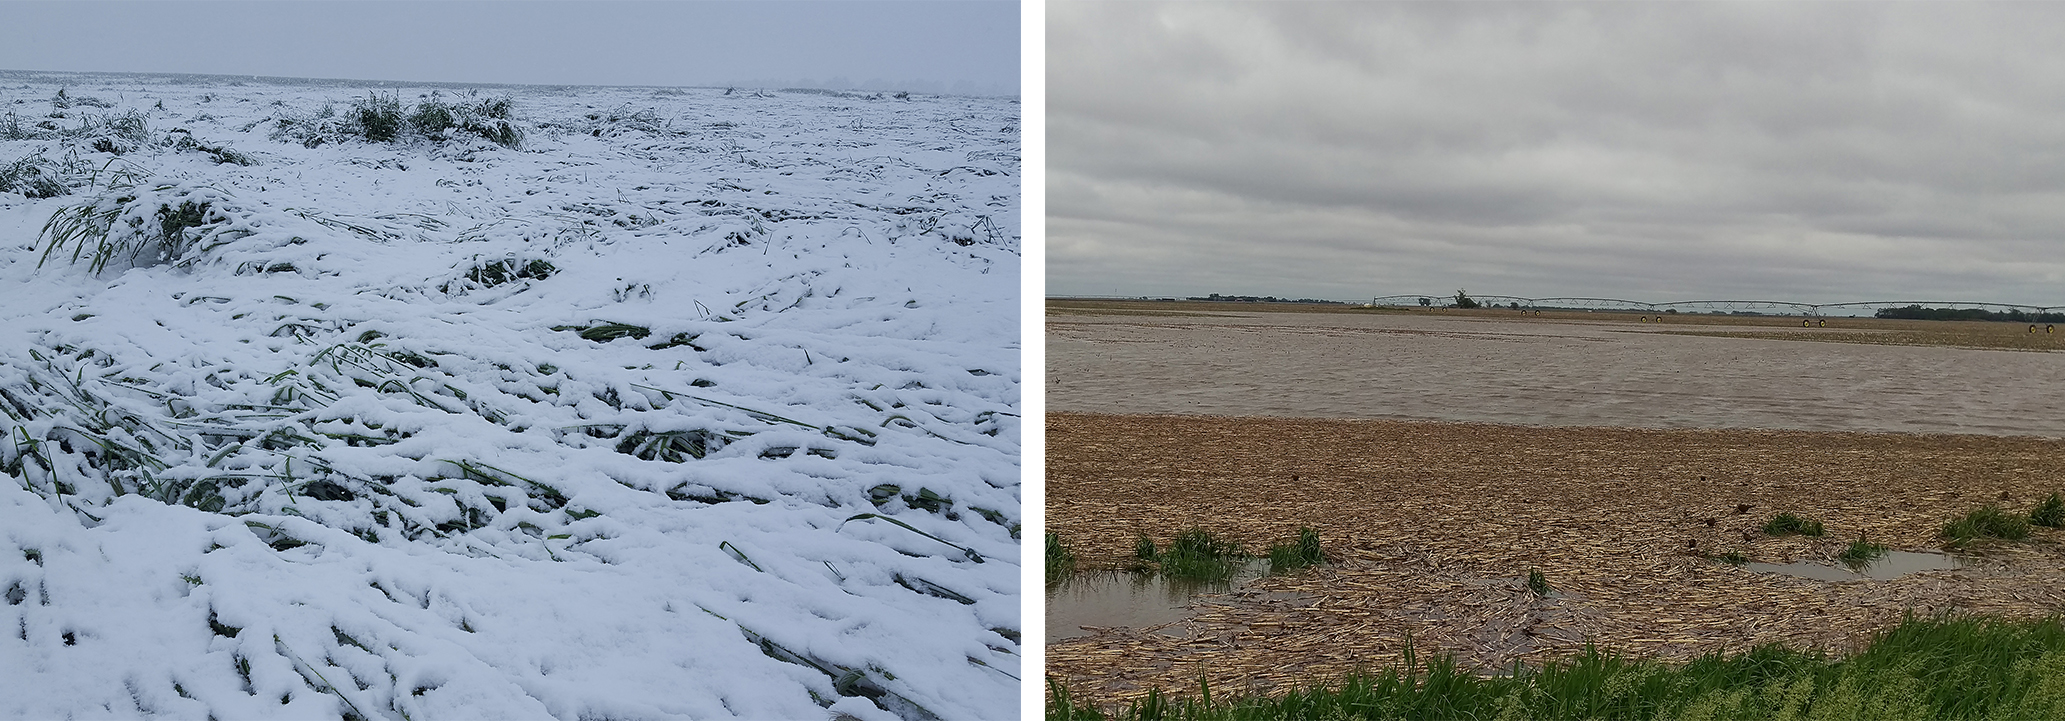 Snow-covered and flooded fields